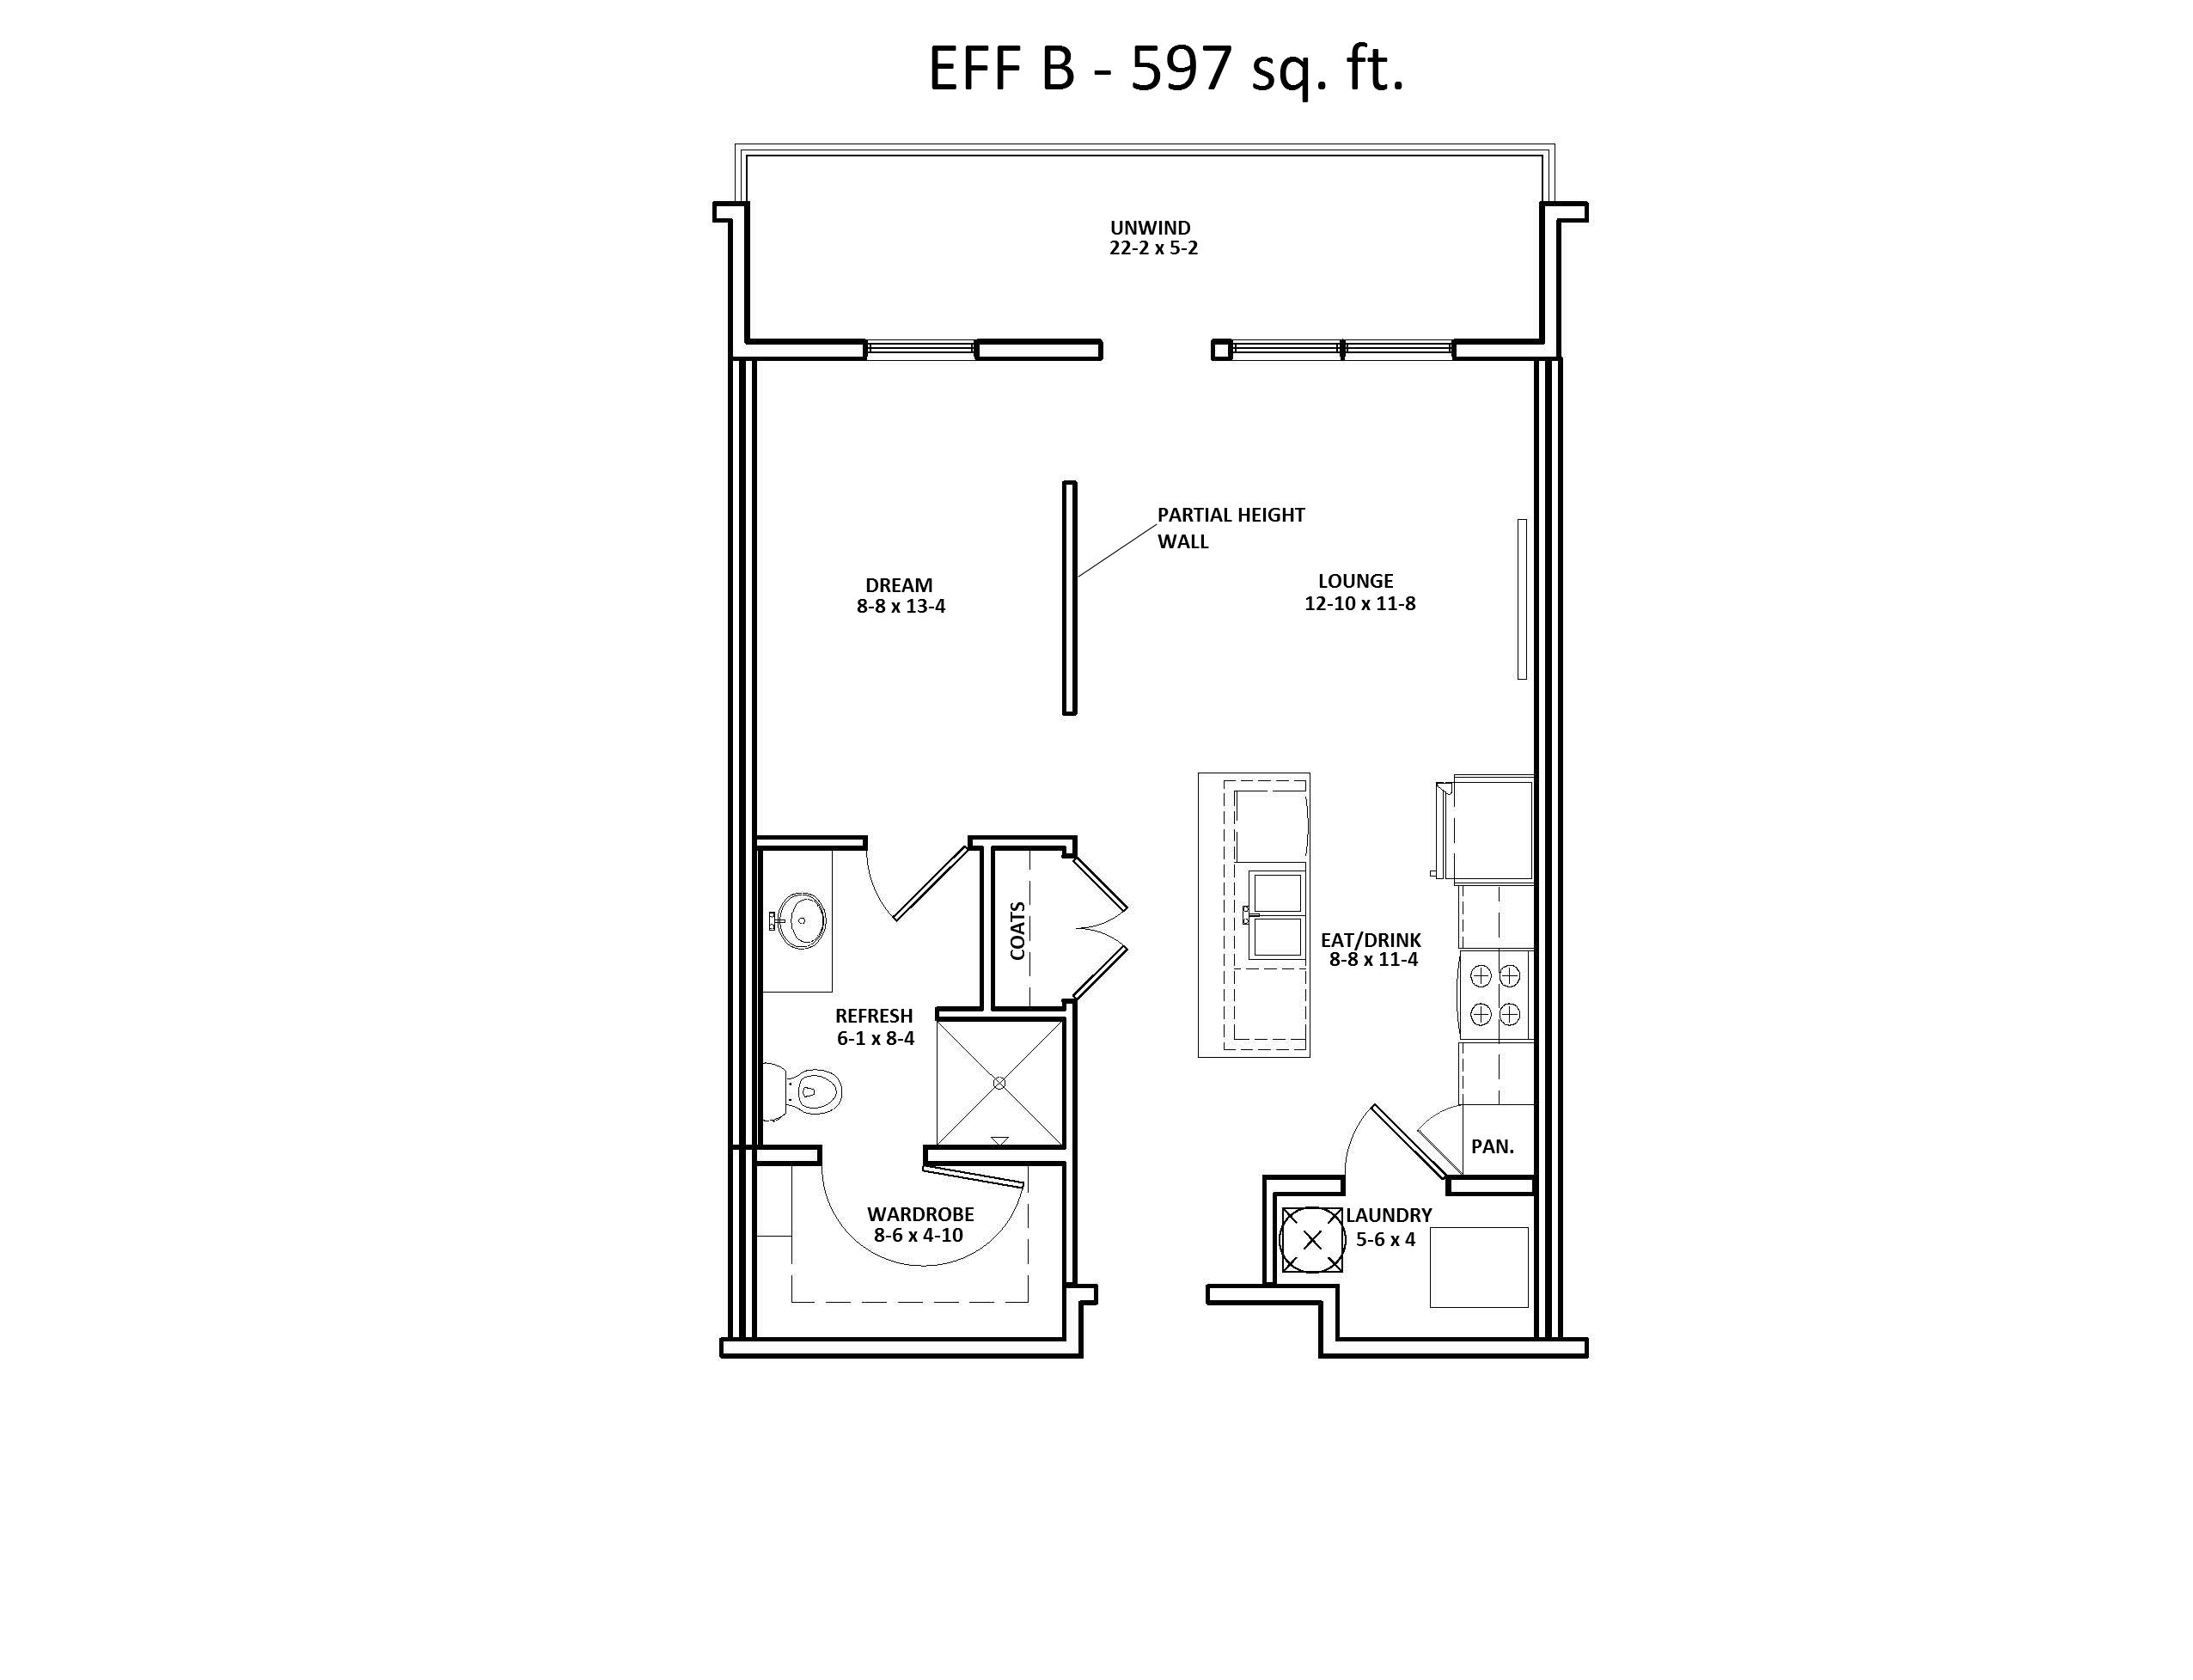 EFF B Studio Floor Plan, Discovery at the Realm (Castle Hills), Lewisville, TX